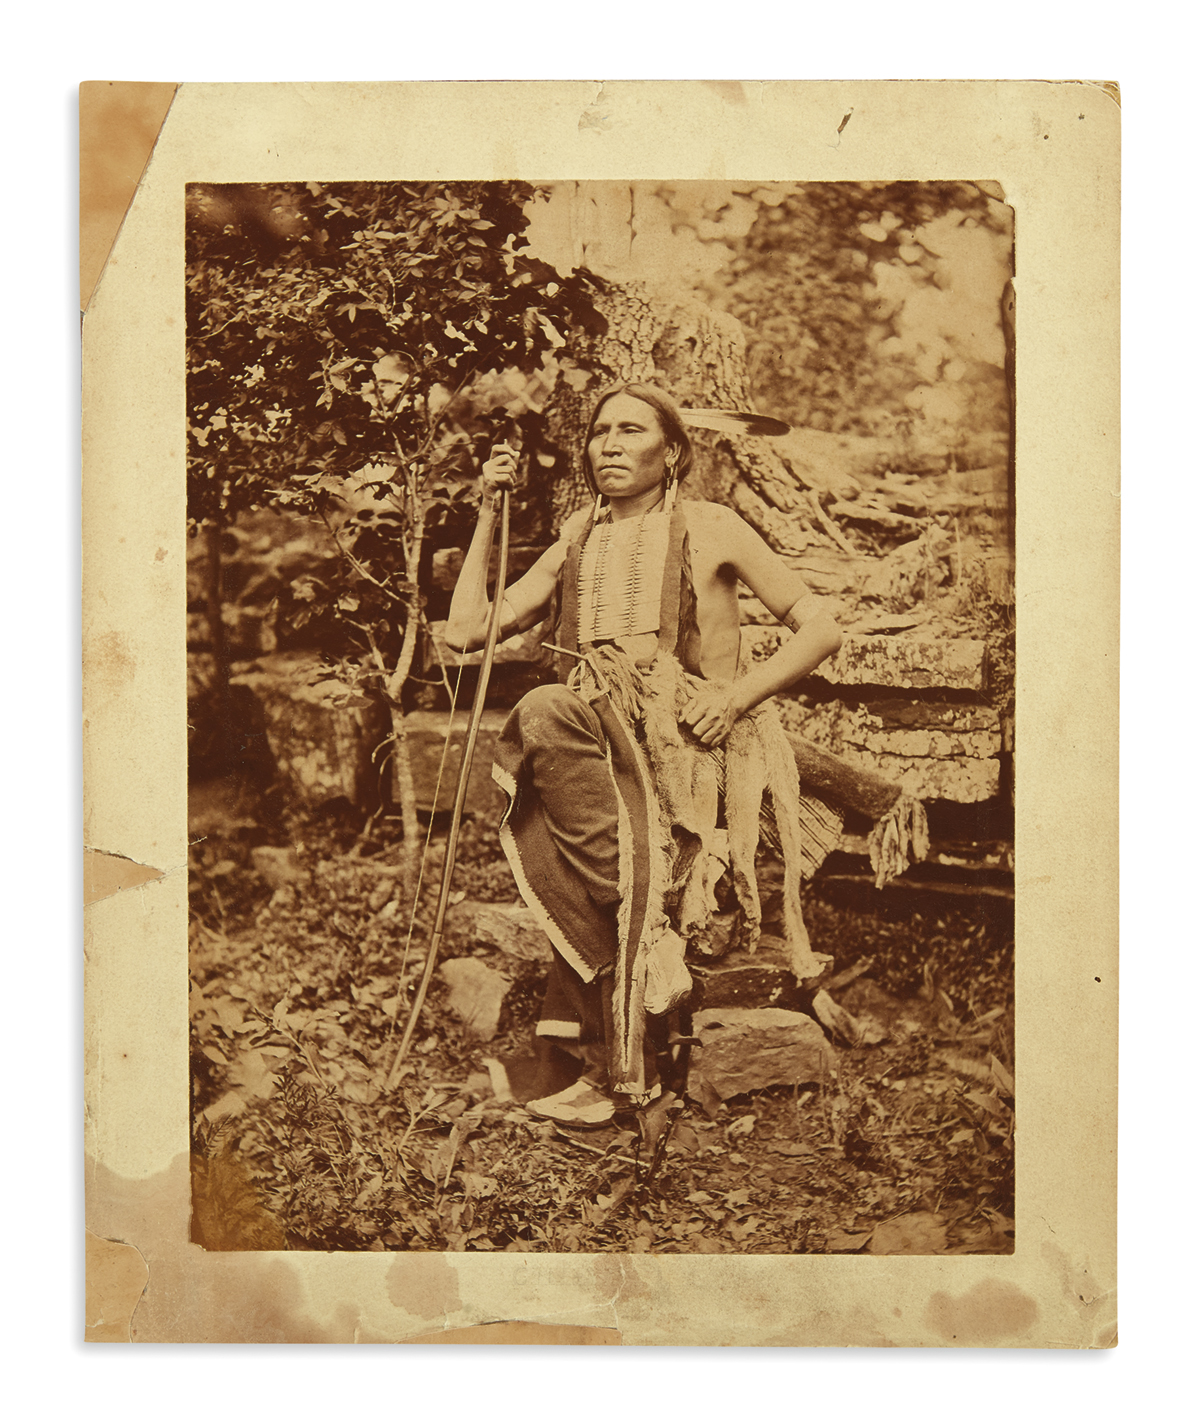 (AMERICAN-INDIANS--PHOTOGRAPHS)-Hillers-John-K;-photographer-Large-portrait-of-Little-Bear-of-the-Cheyennes